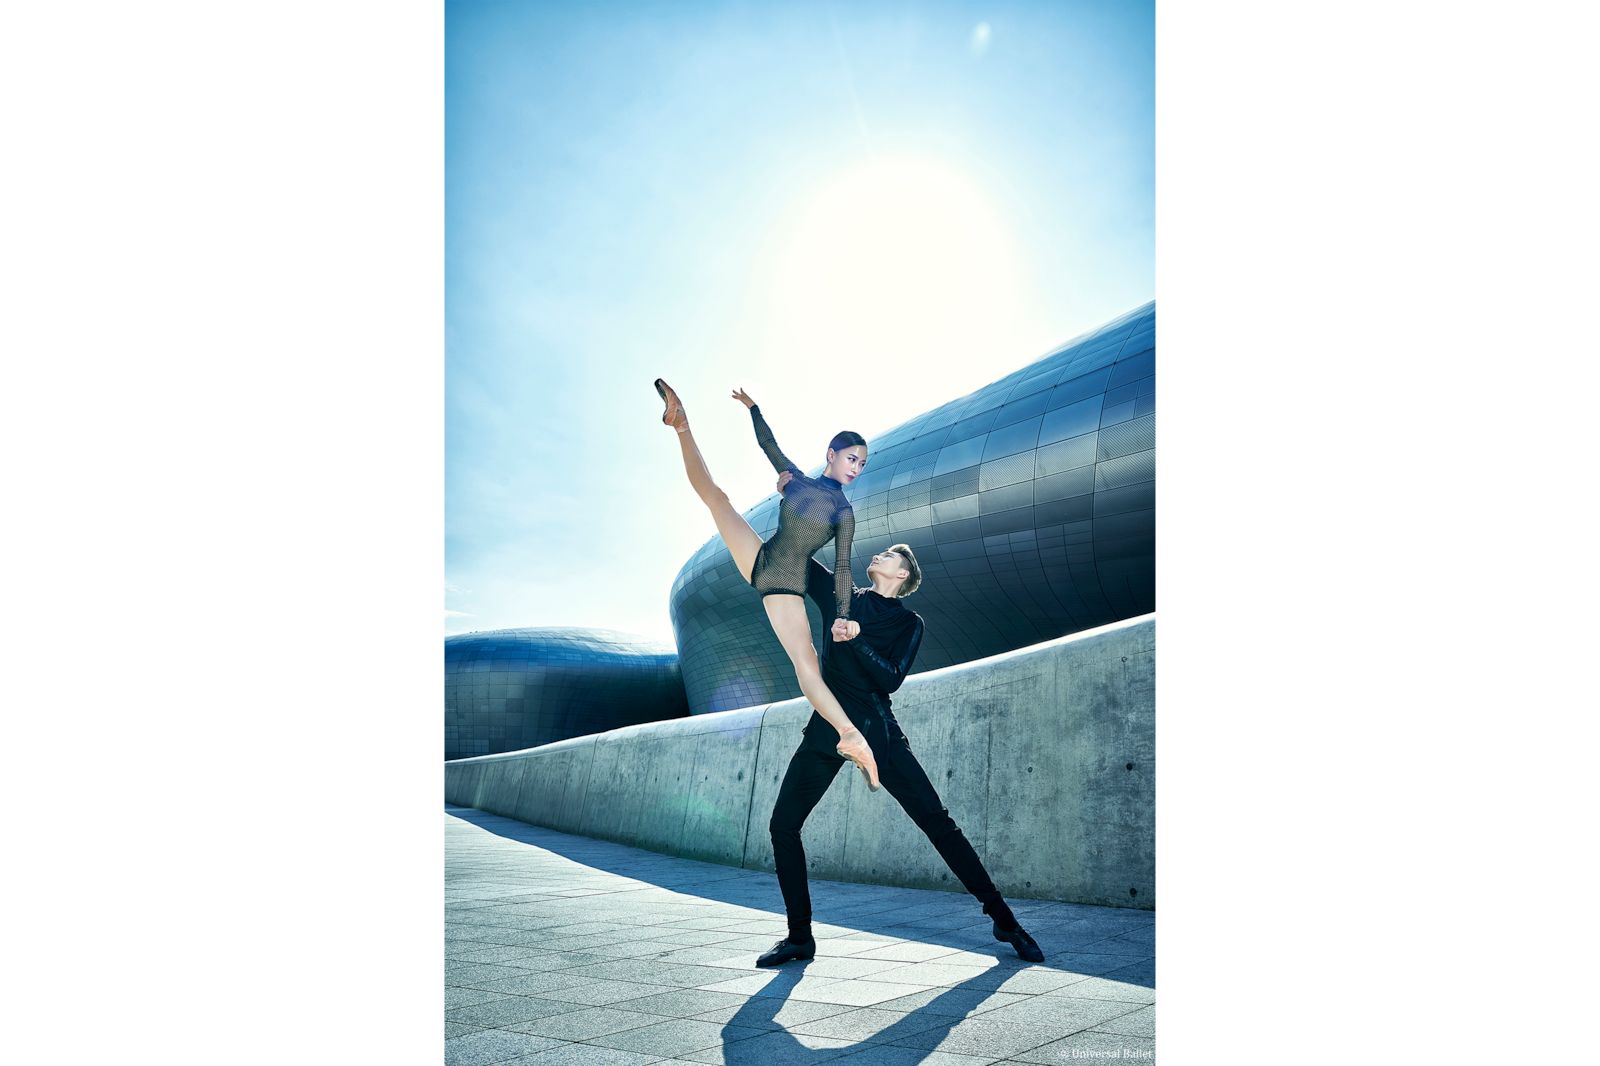 ballet couple in pose against building alpha 7RIII